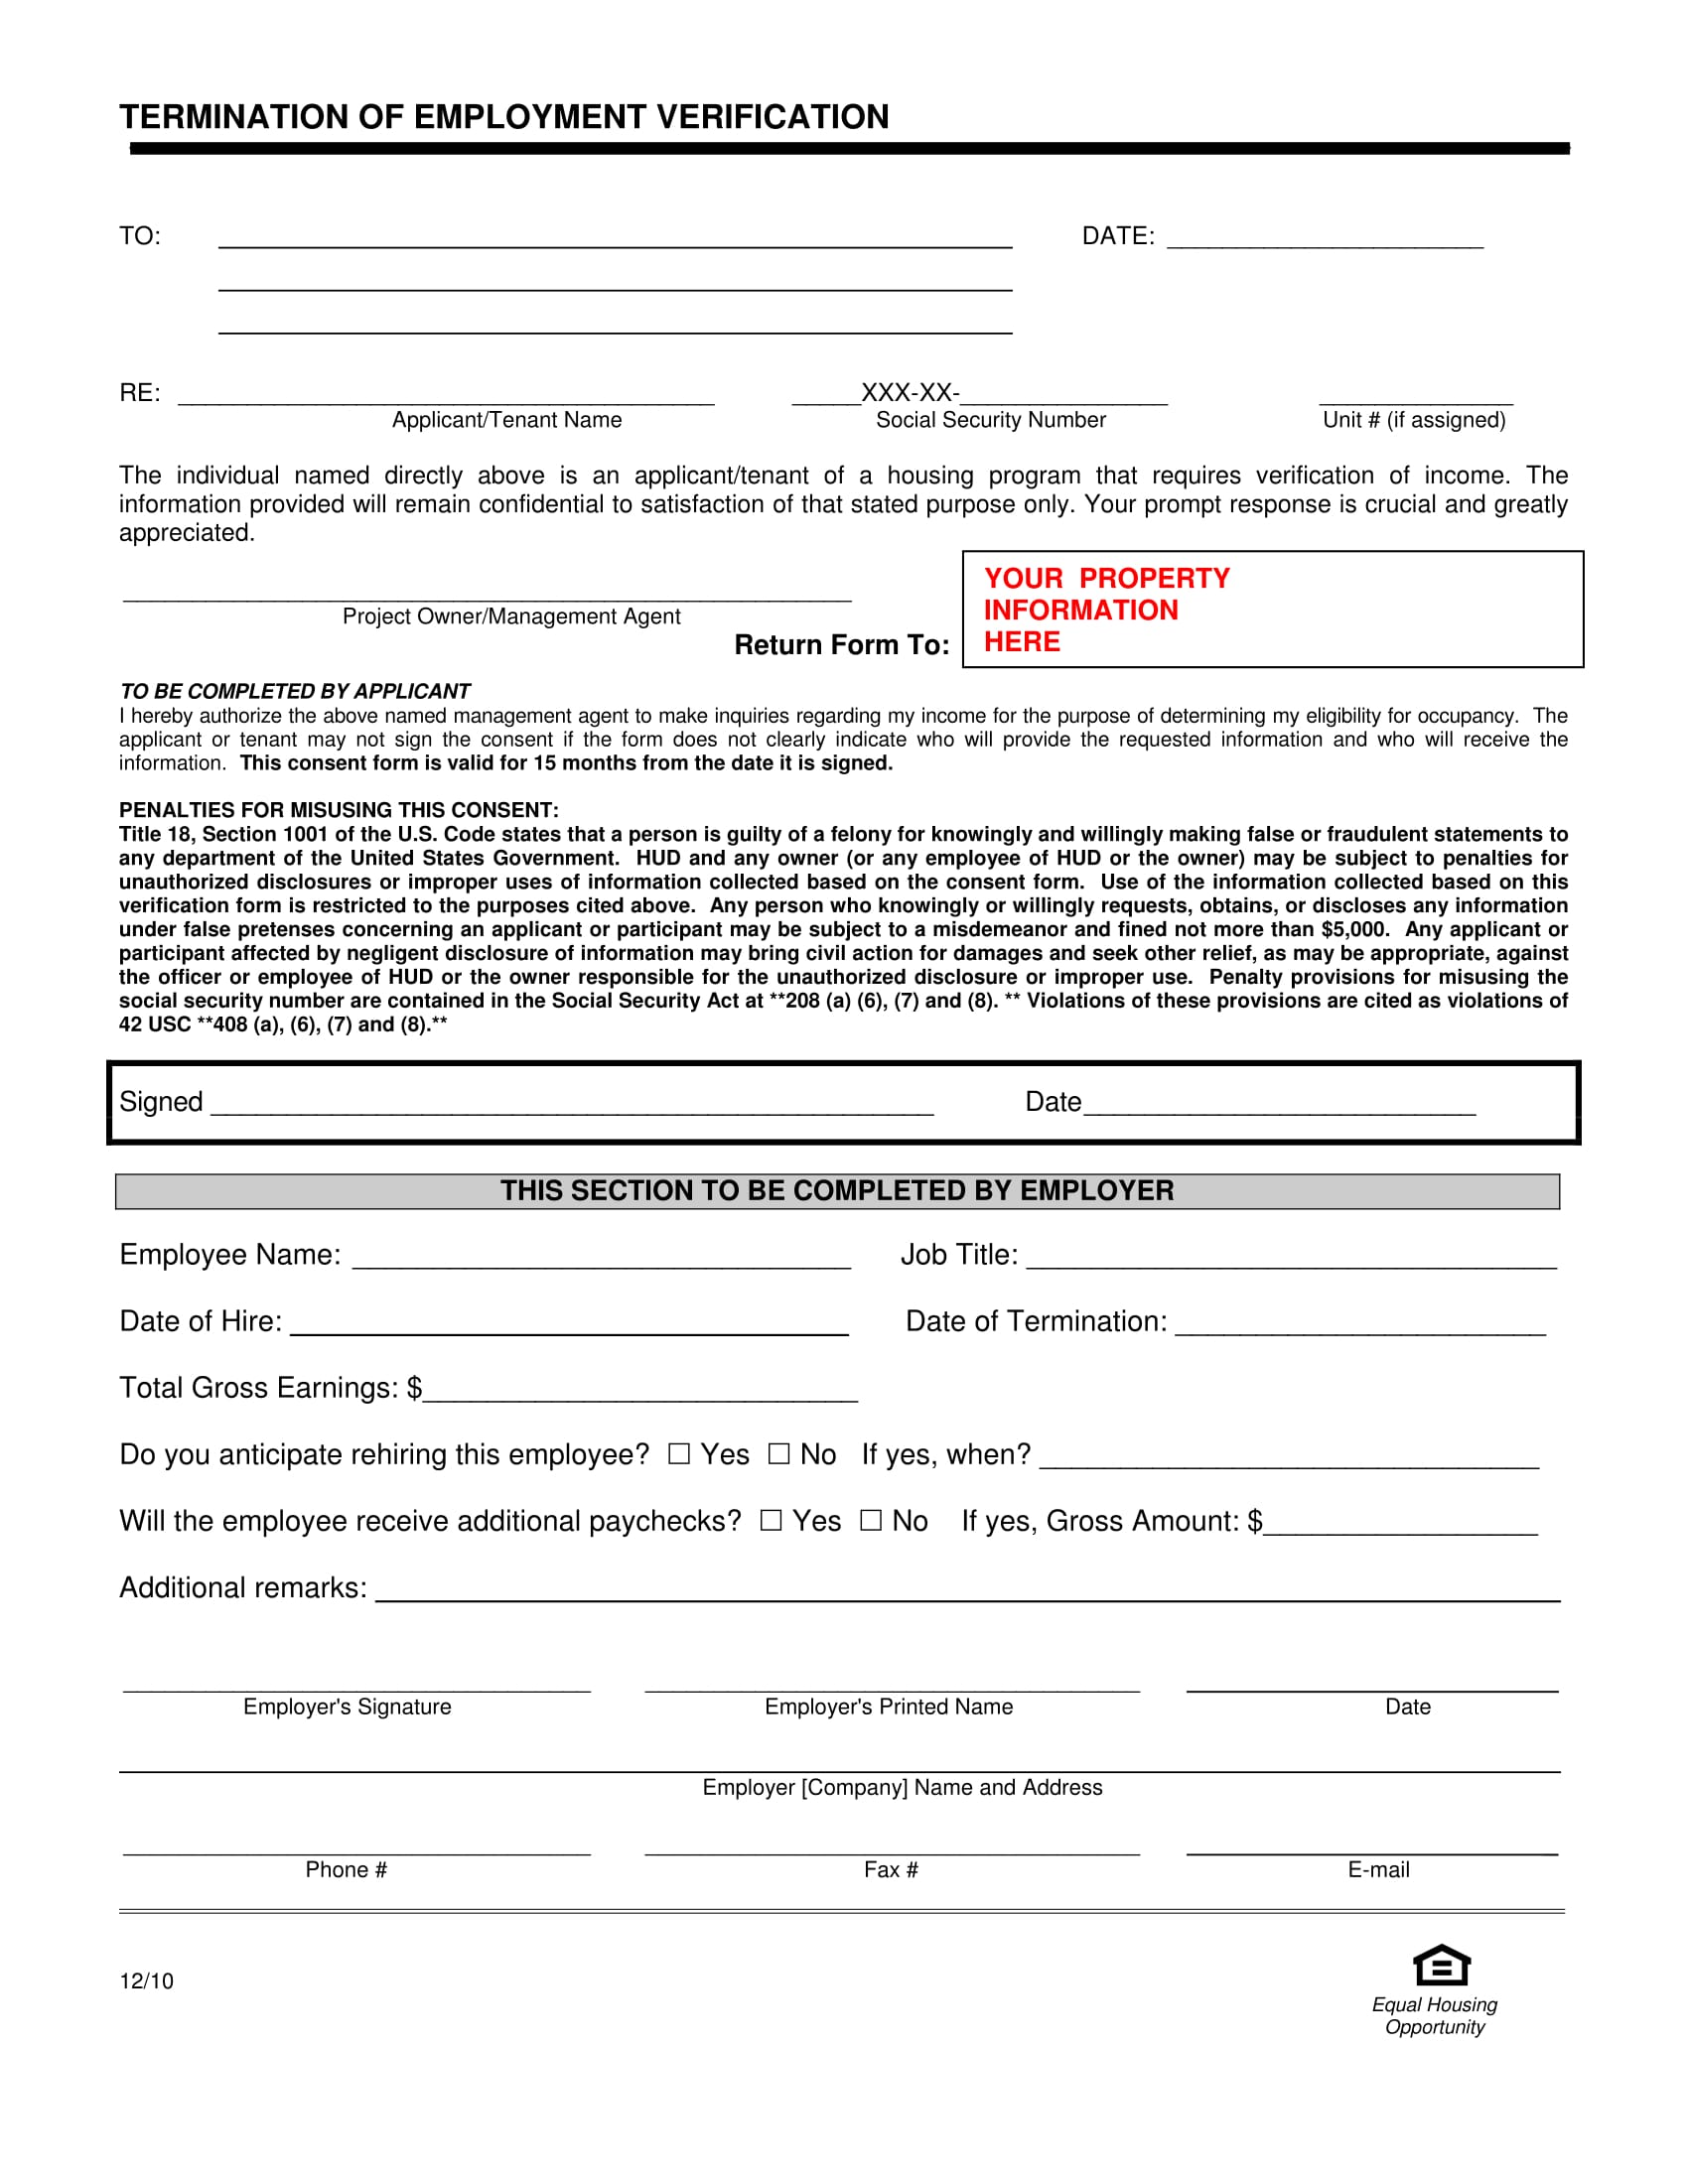 tenant employment termination verification form 1